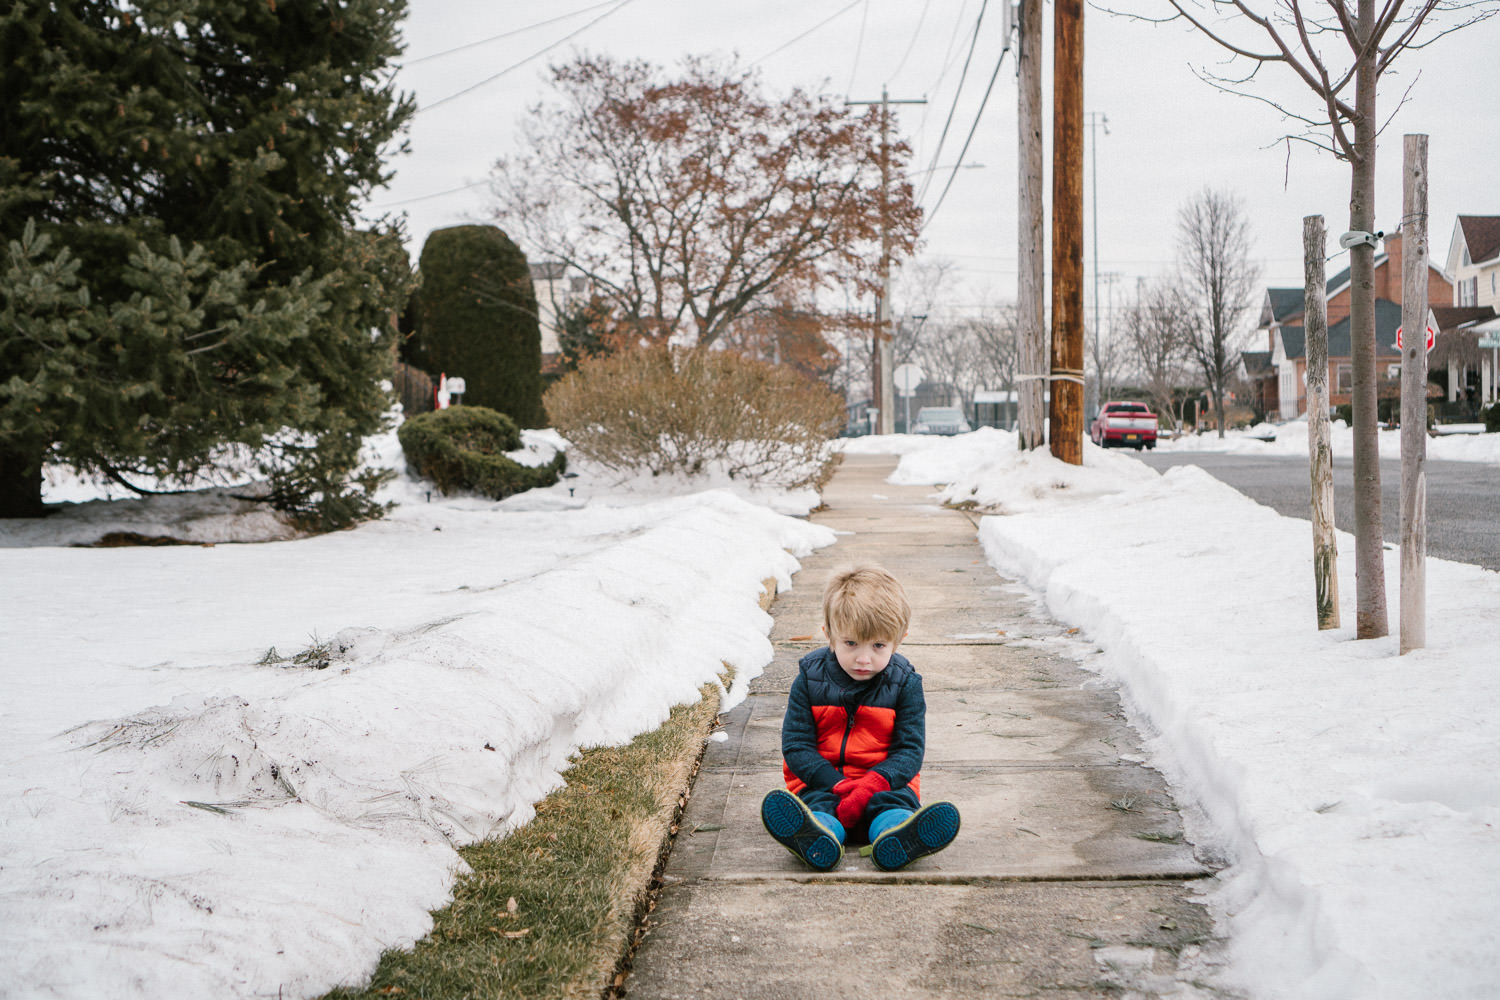 A little boy sits in the middle of a snowy sidewalk.